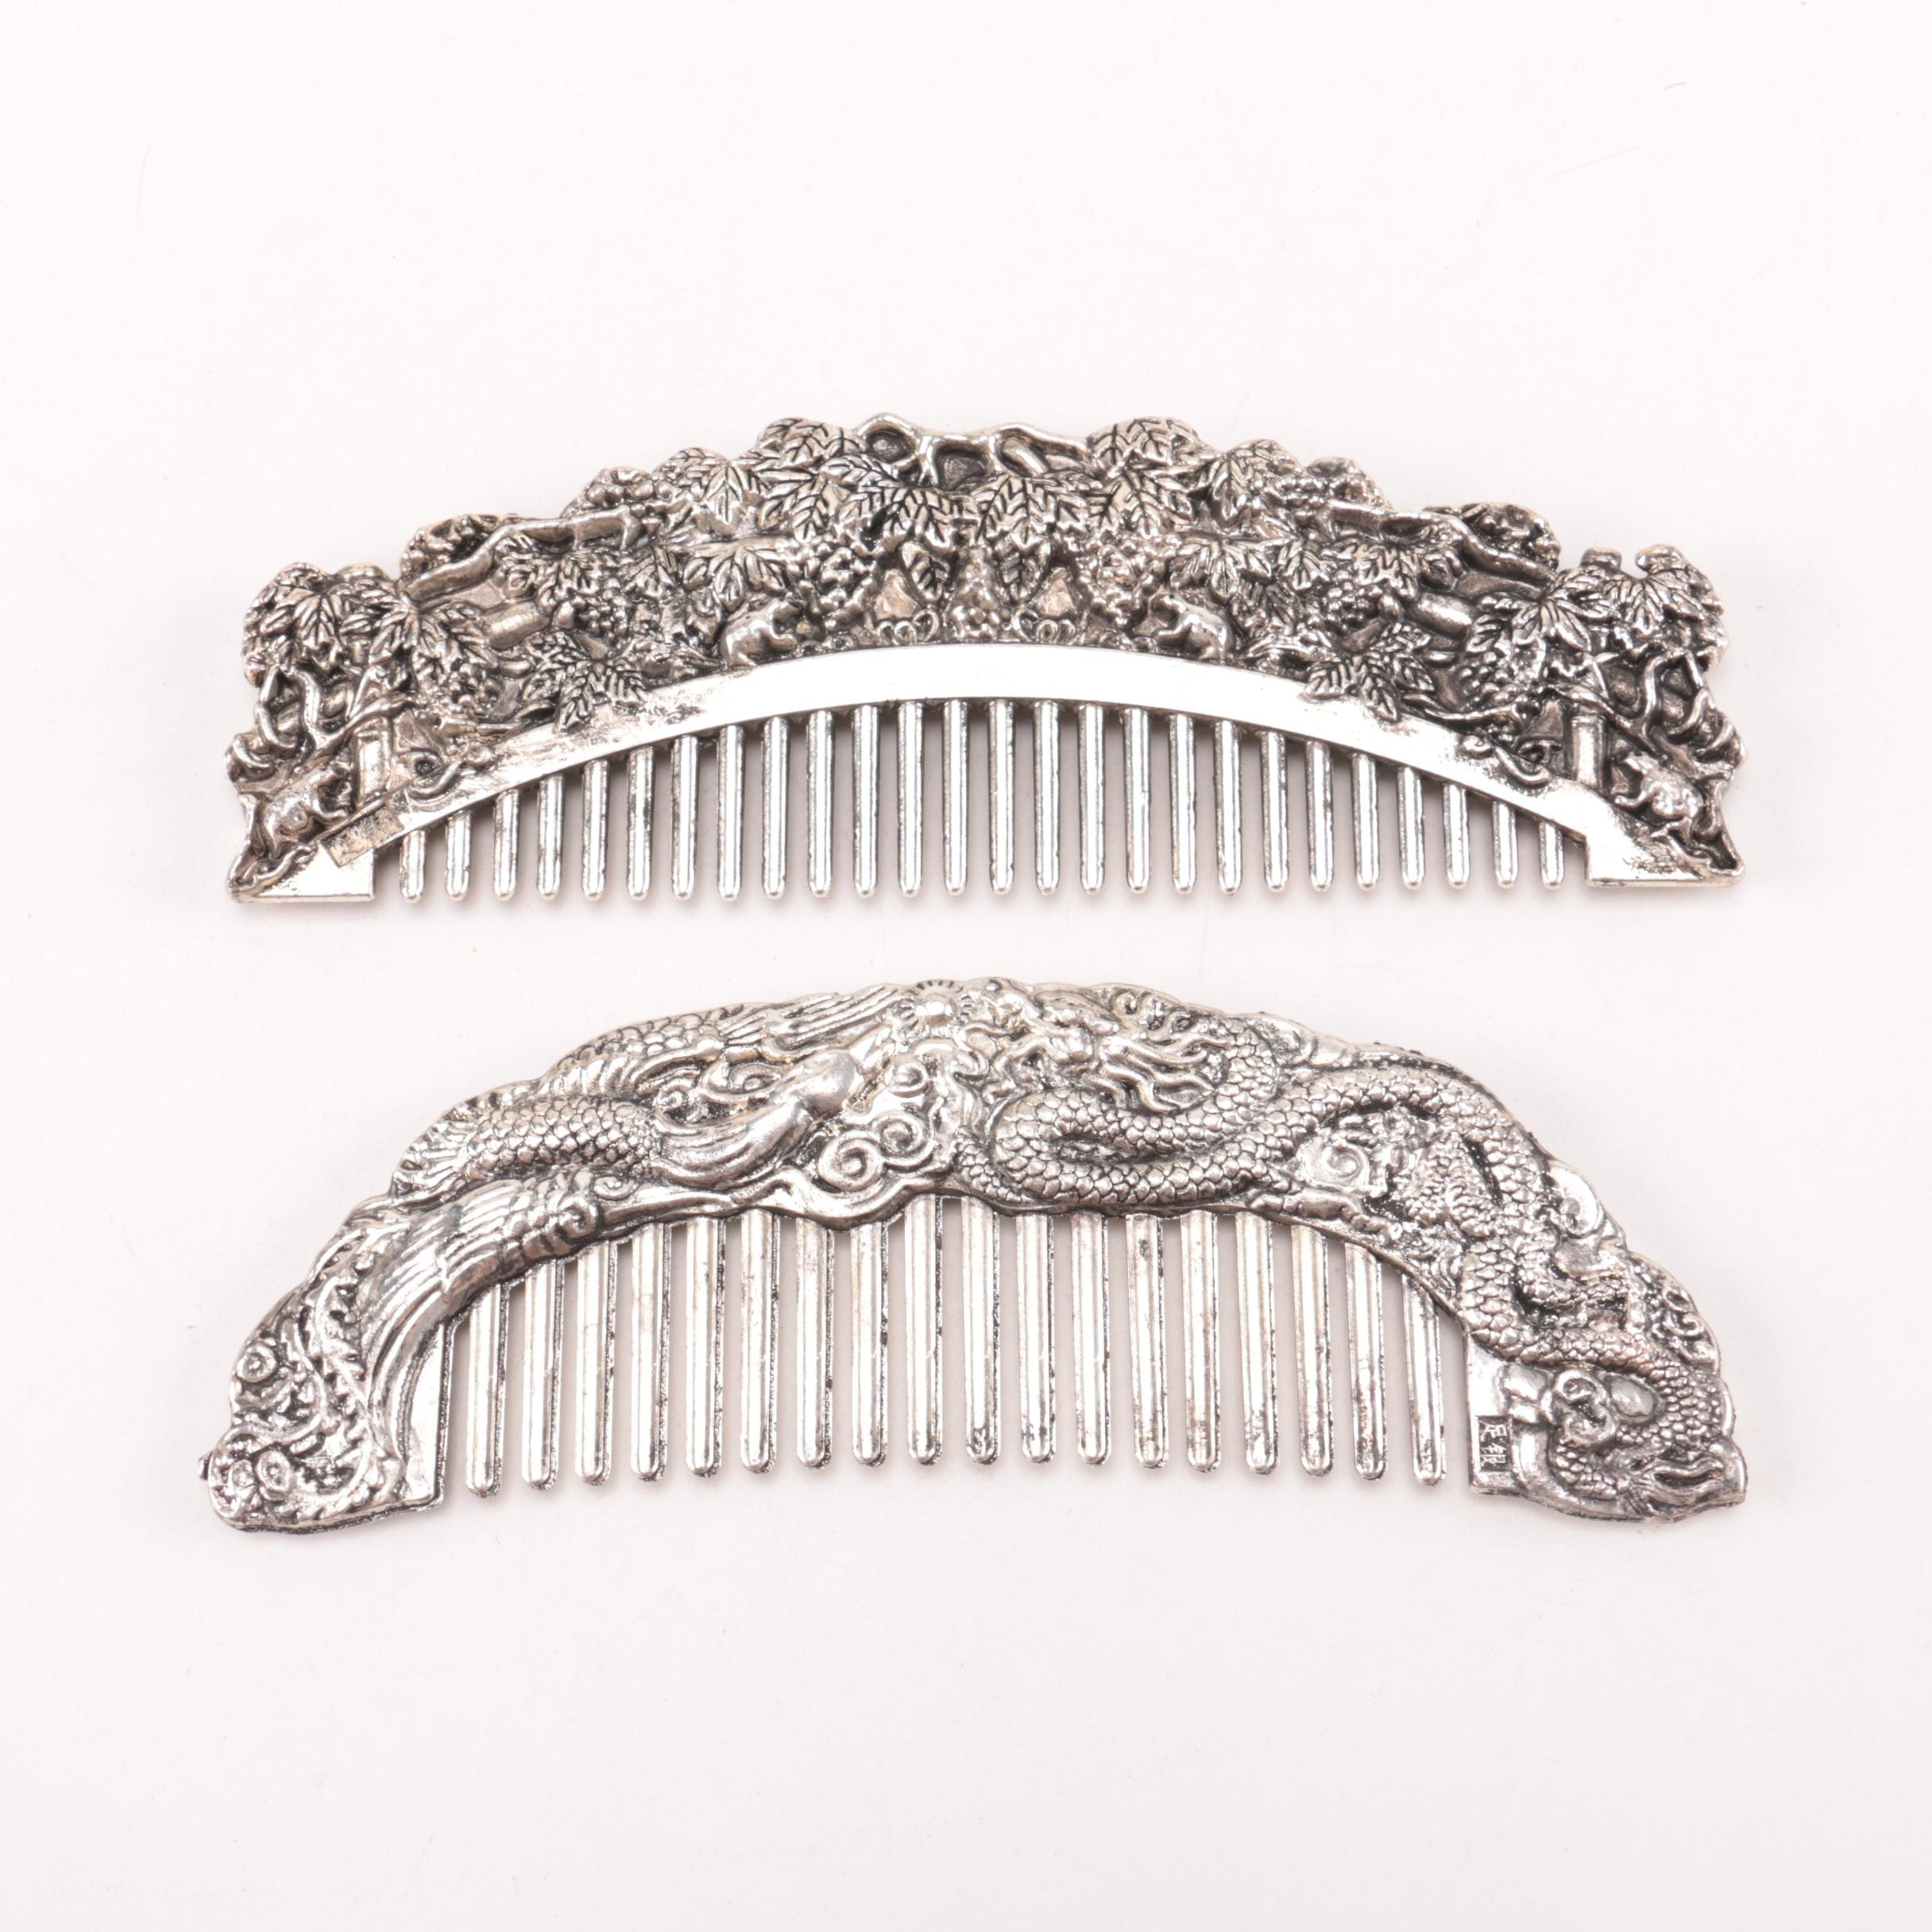 Chinese Silver-Tone Combs